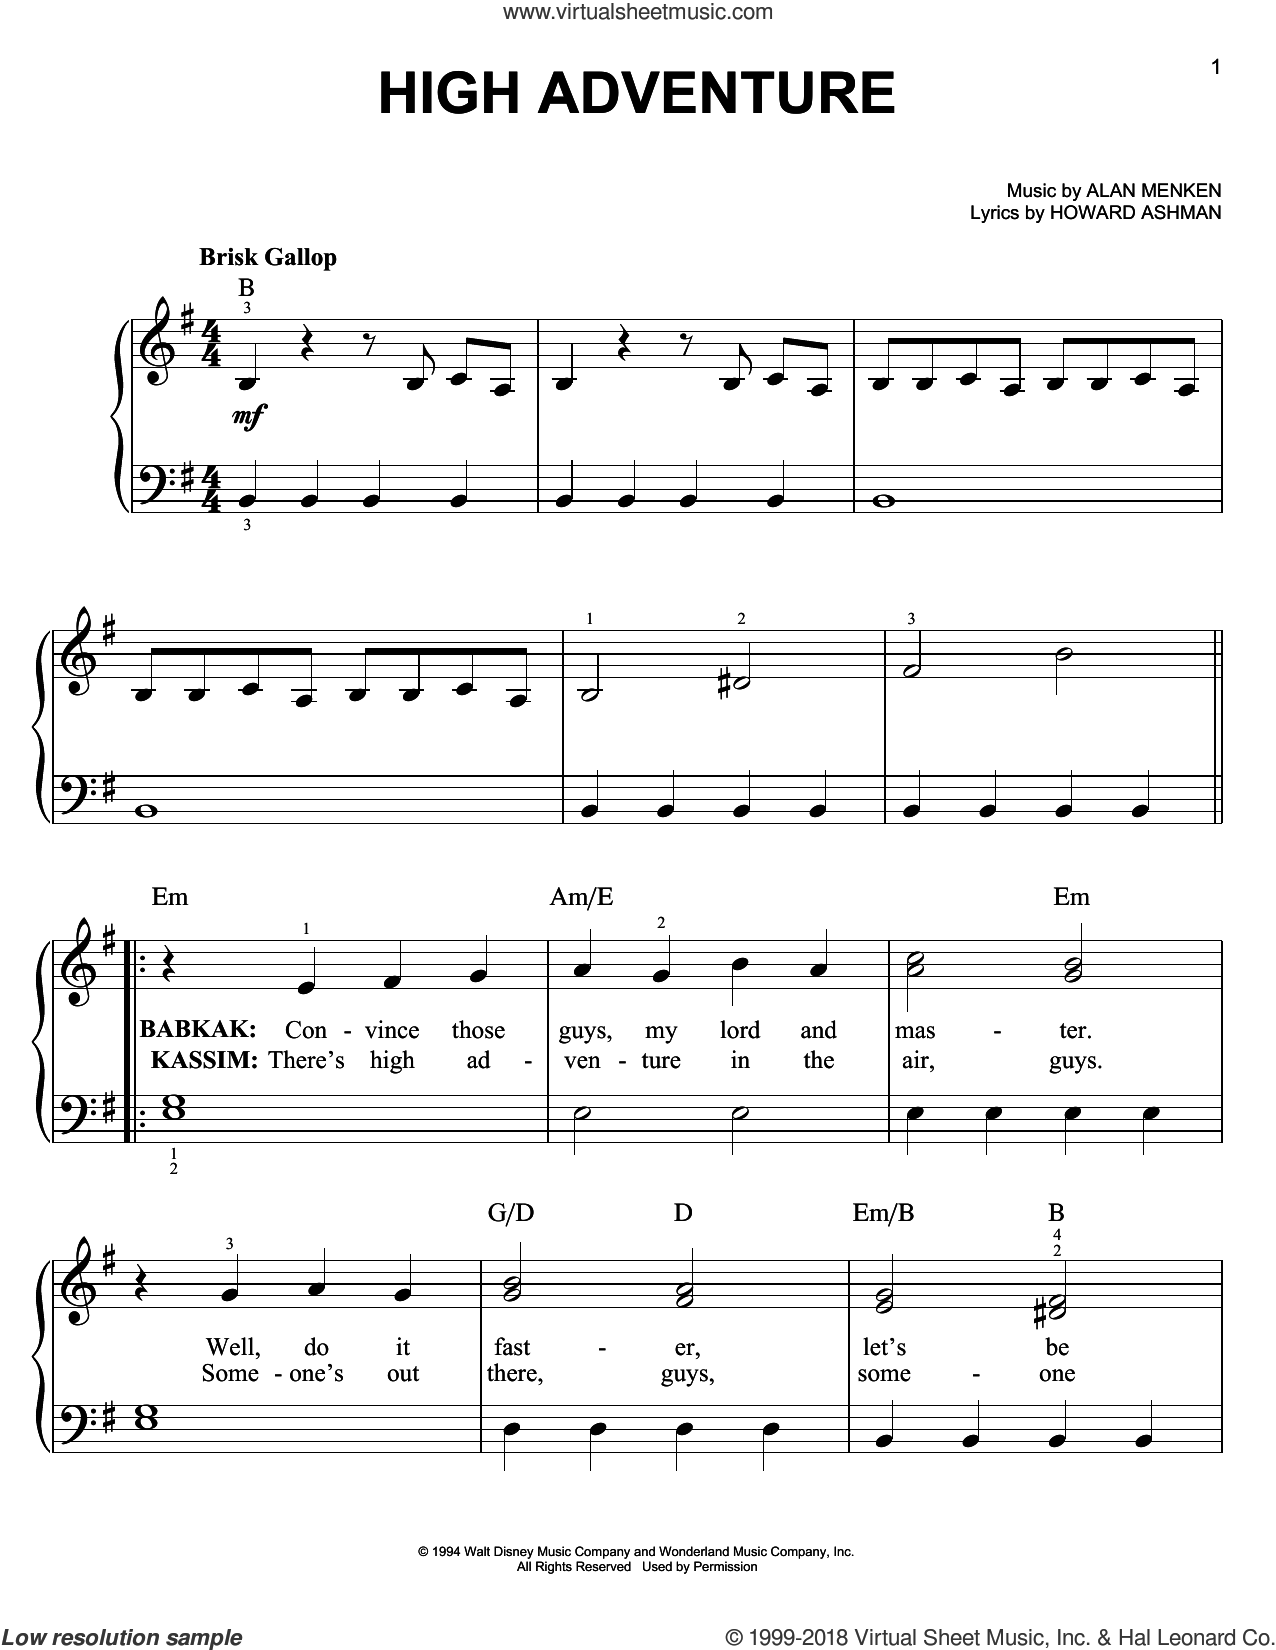 High Adventure sheet music for piano solo by Alan Menken and Howard Ashman, easy. Score Image Preview.